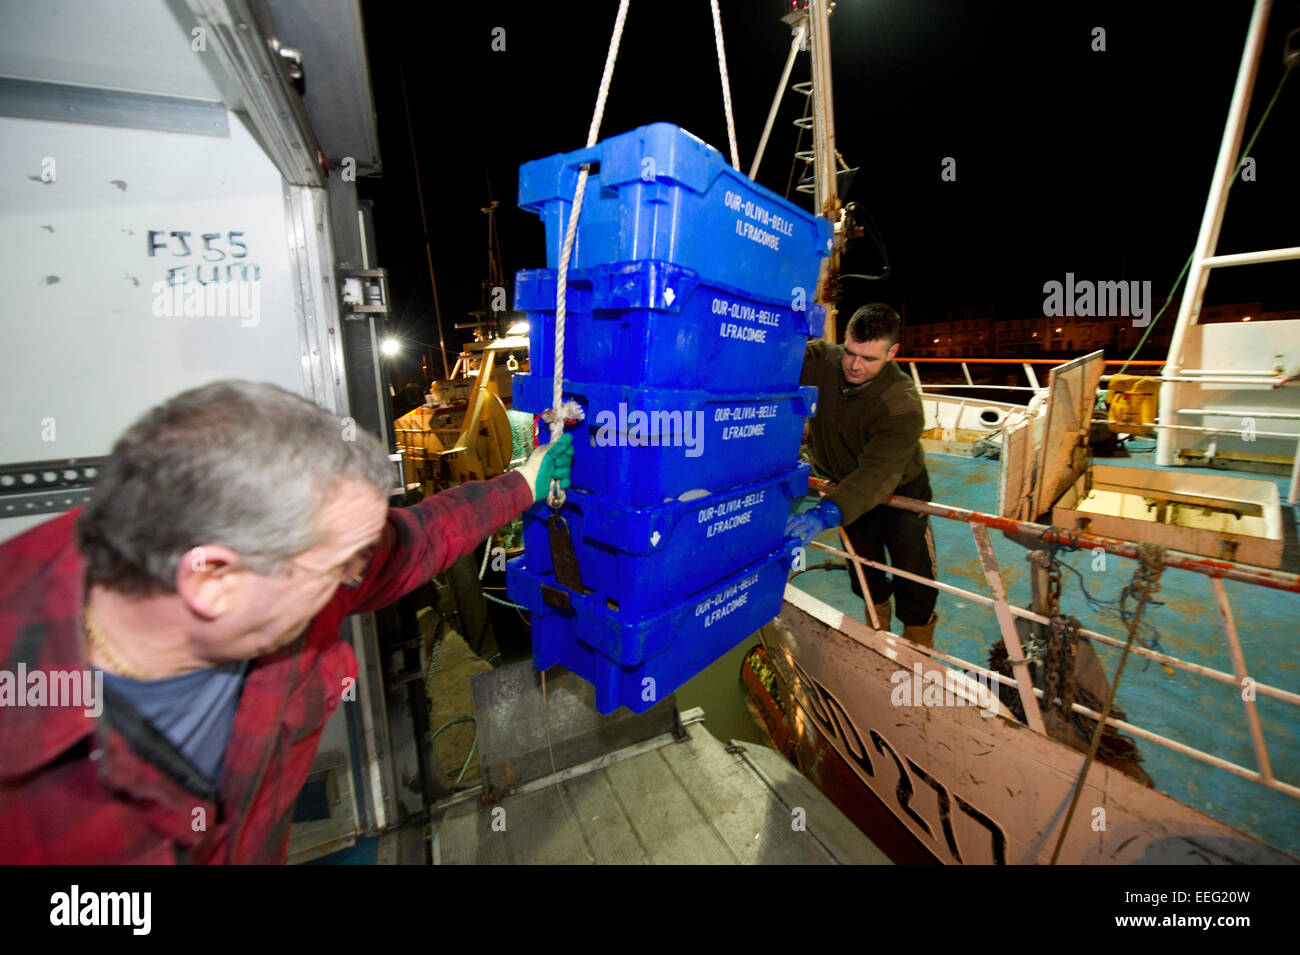 2 fishermen offloading a catch from a UK trawler - Stock Image